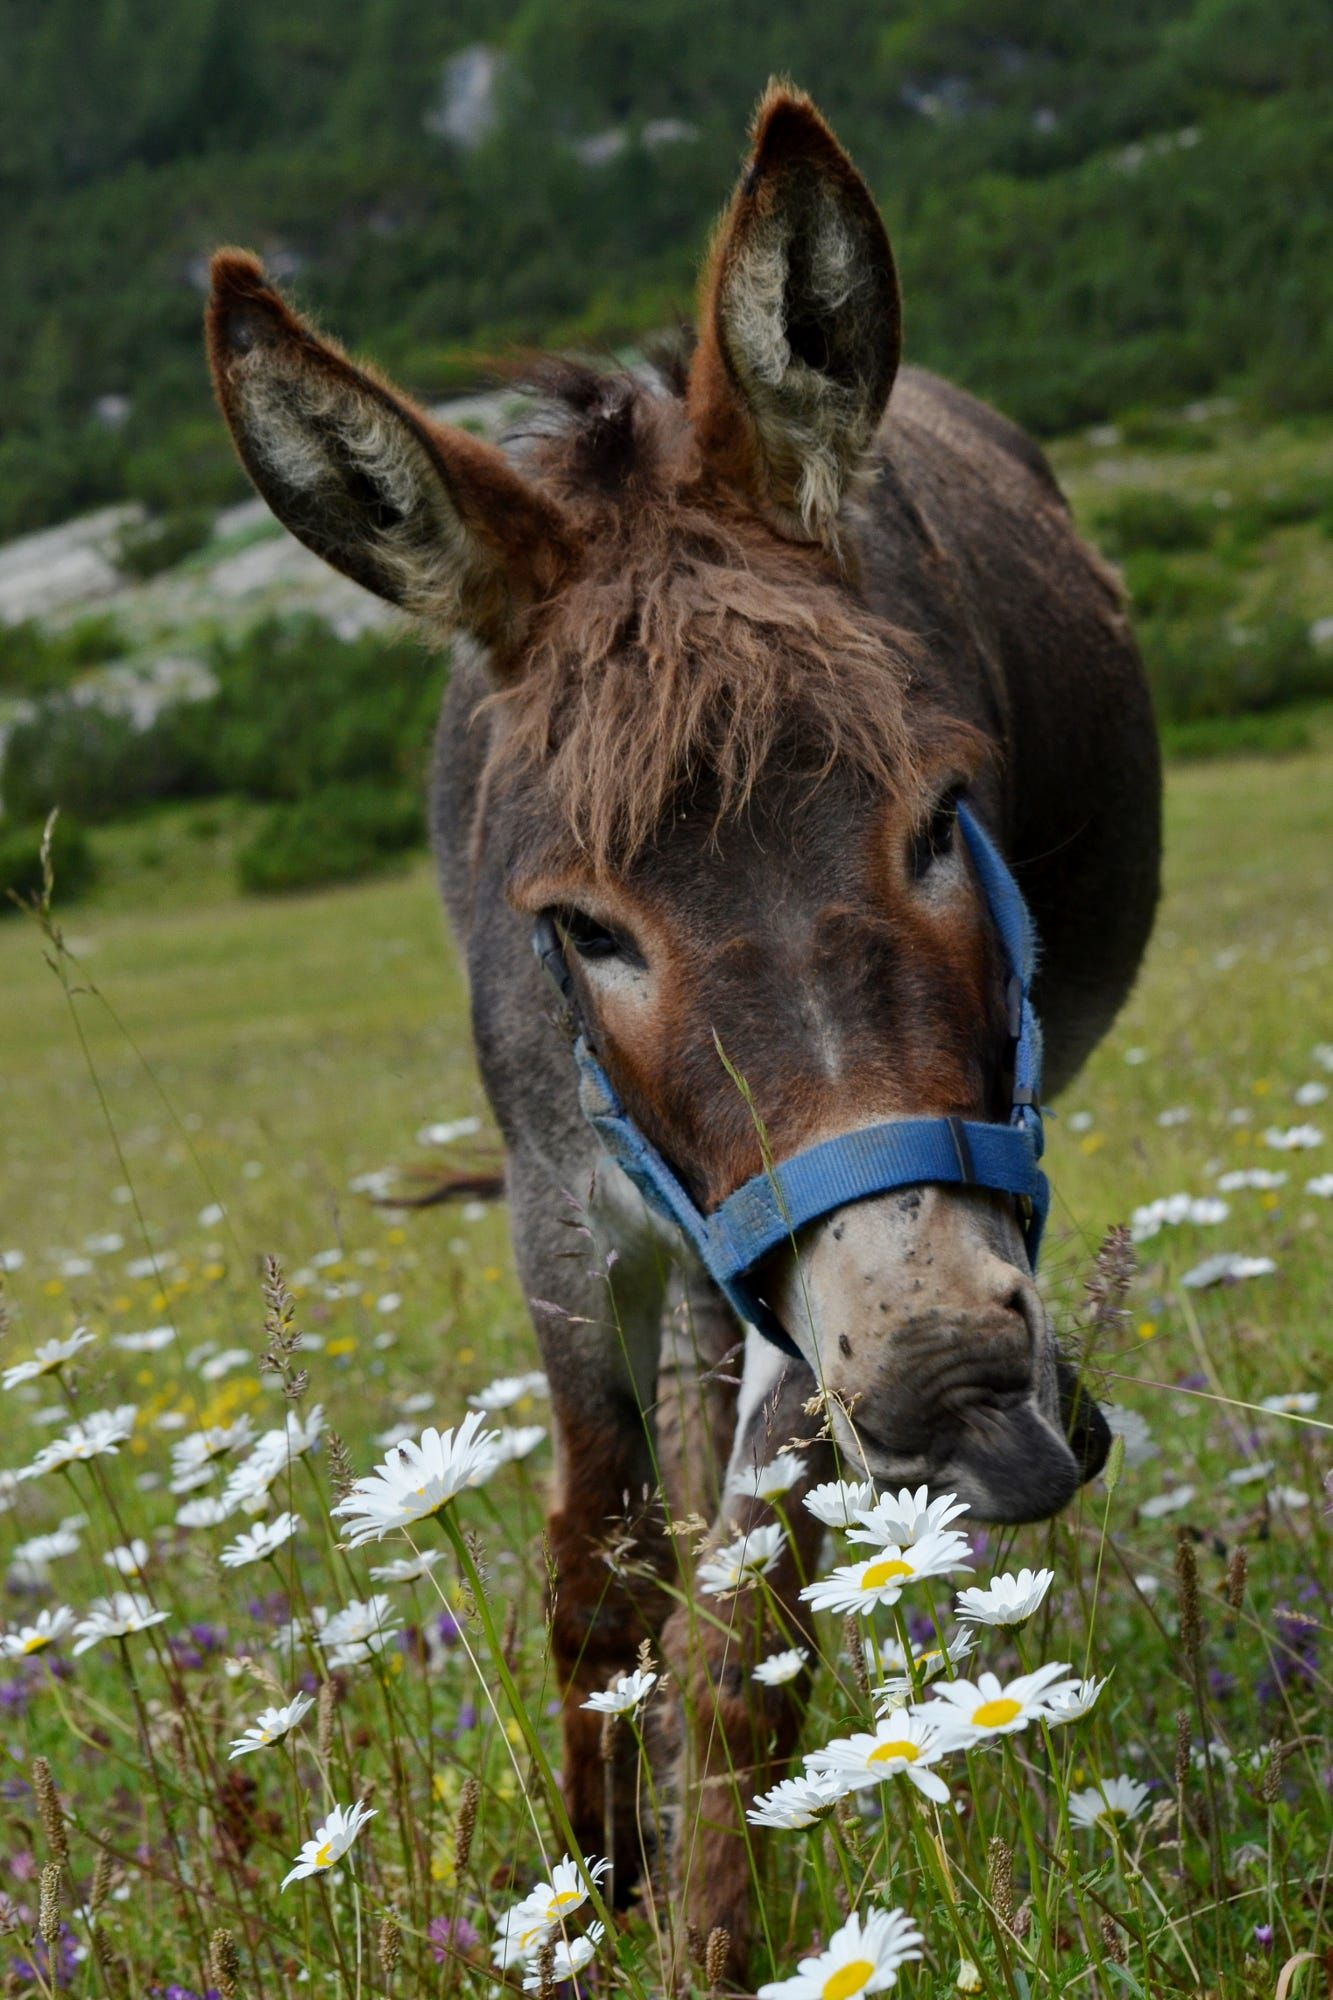 Superb Donkey And Daisies   By Gabriele Sala